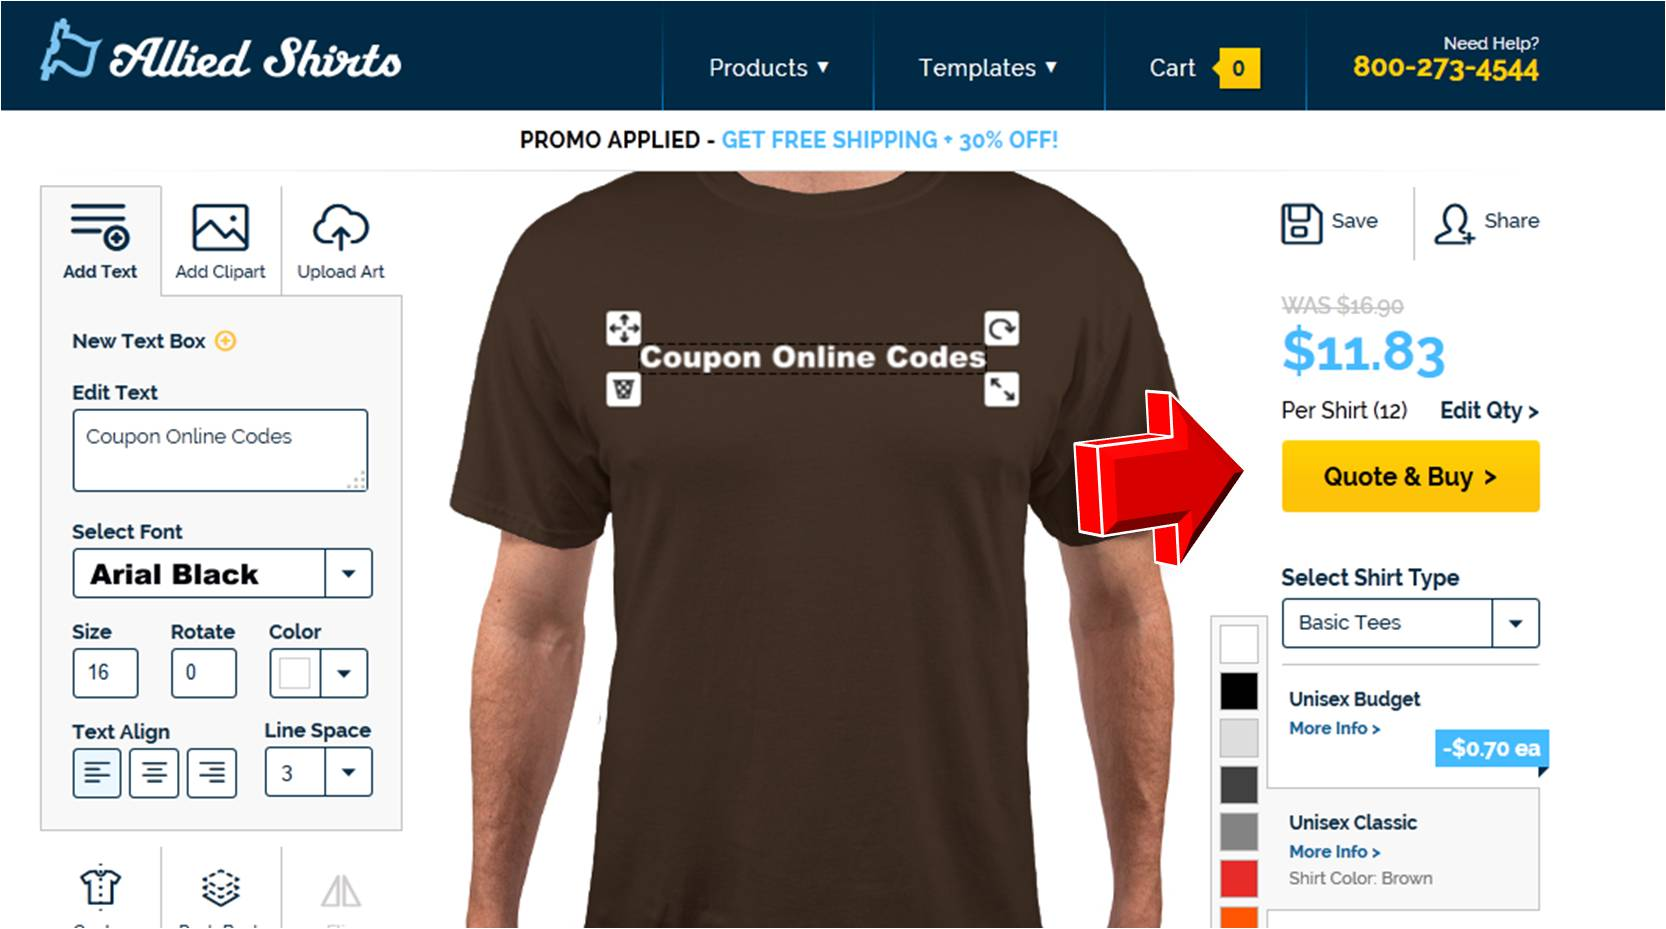 Allied Shirts Promo Code | Coupon Code